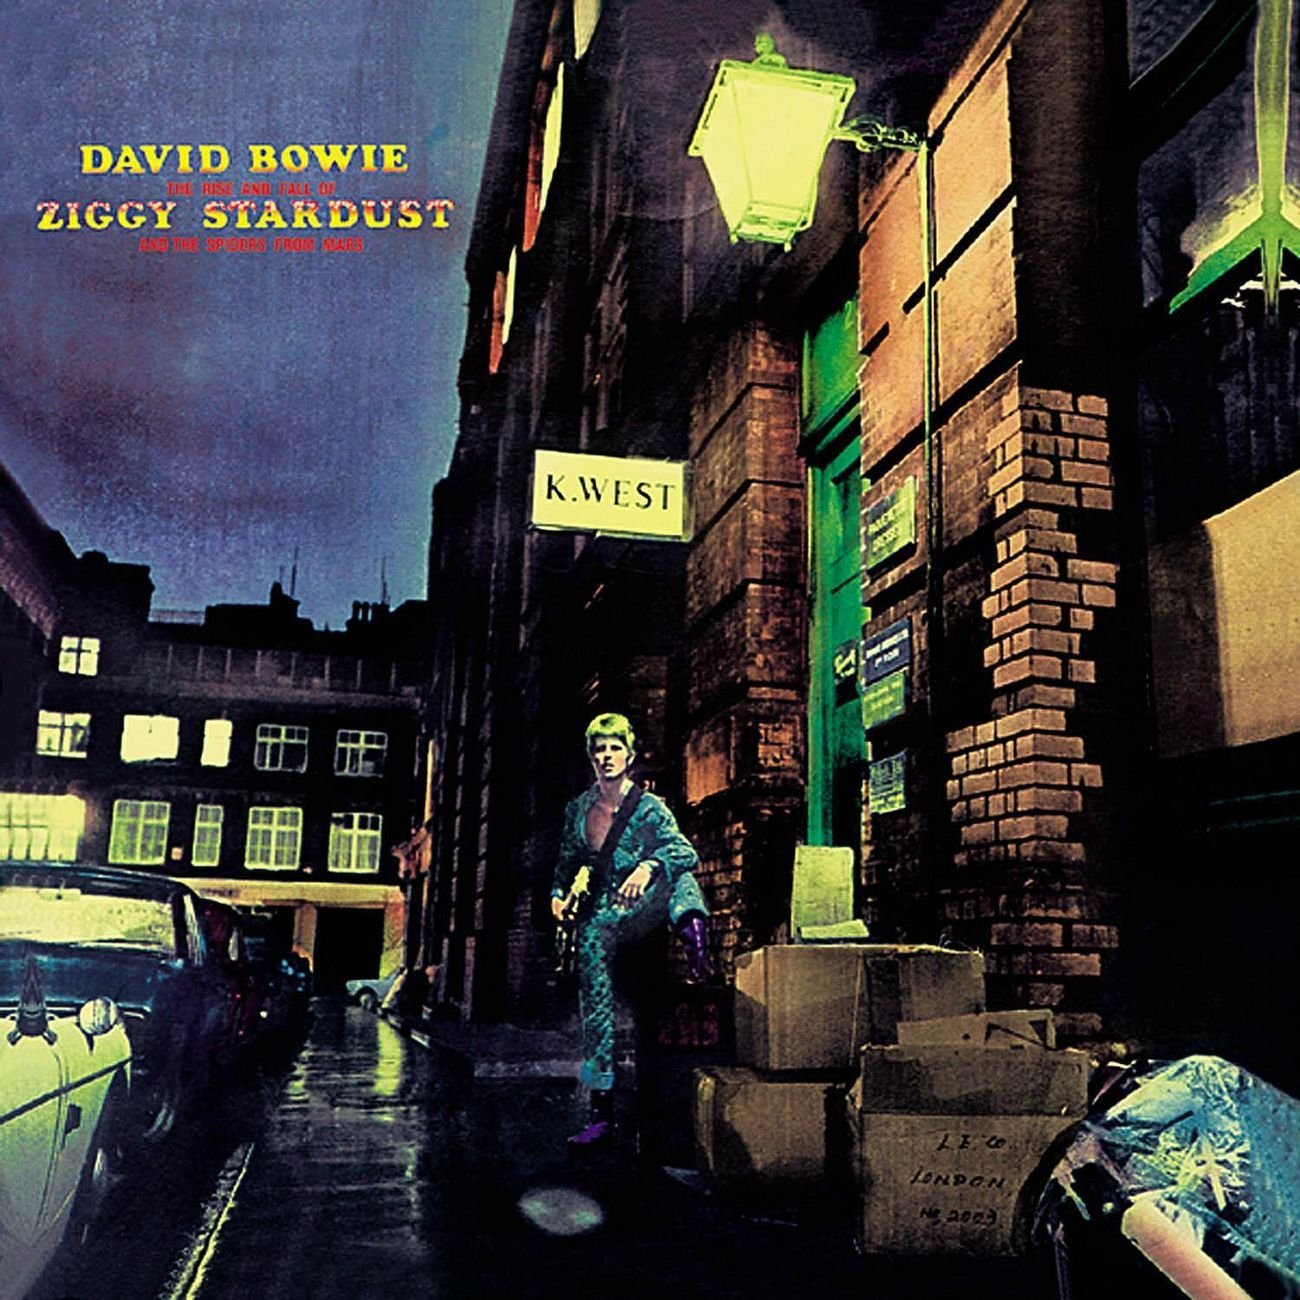 david bowie ziggy stardust CoS Readers Poll Results: Favorite David Bowie Albums